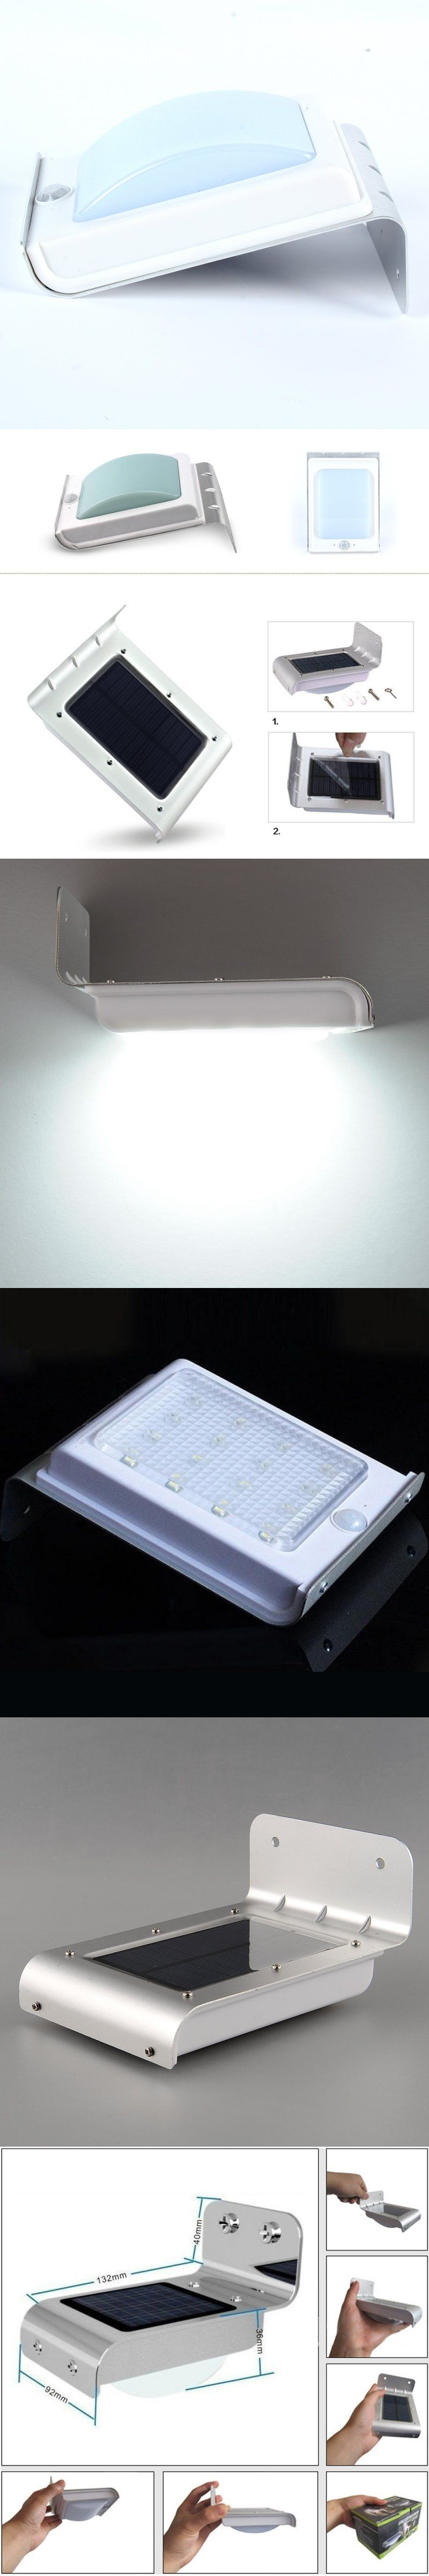 16 Led Sensor Lamp Waterproof Wall Lights Lamps With Solar Power Lantern Dimmer Flasher Outdoor White